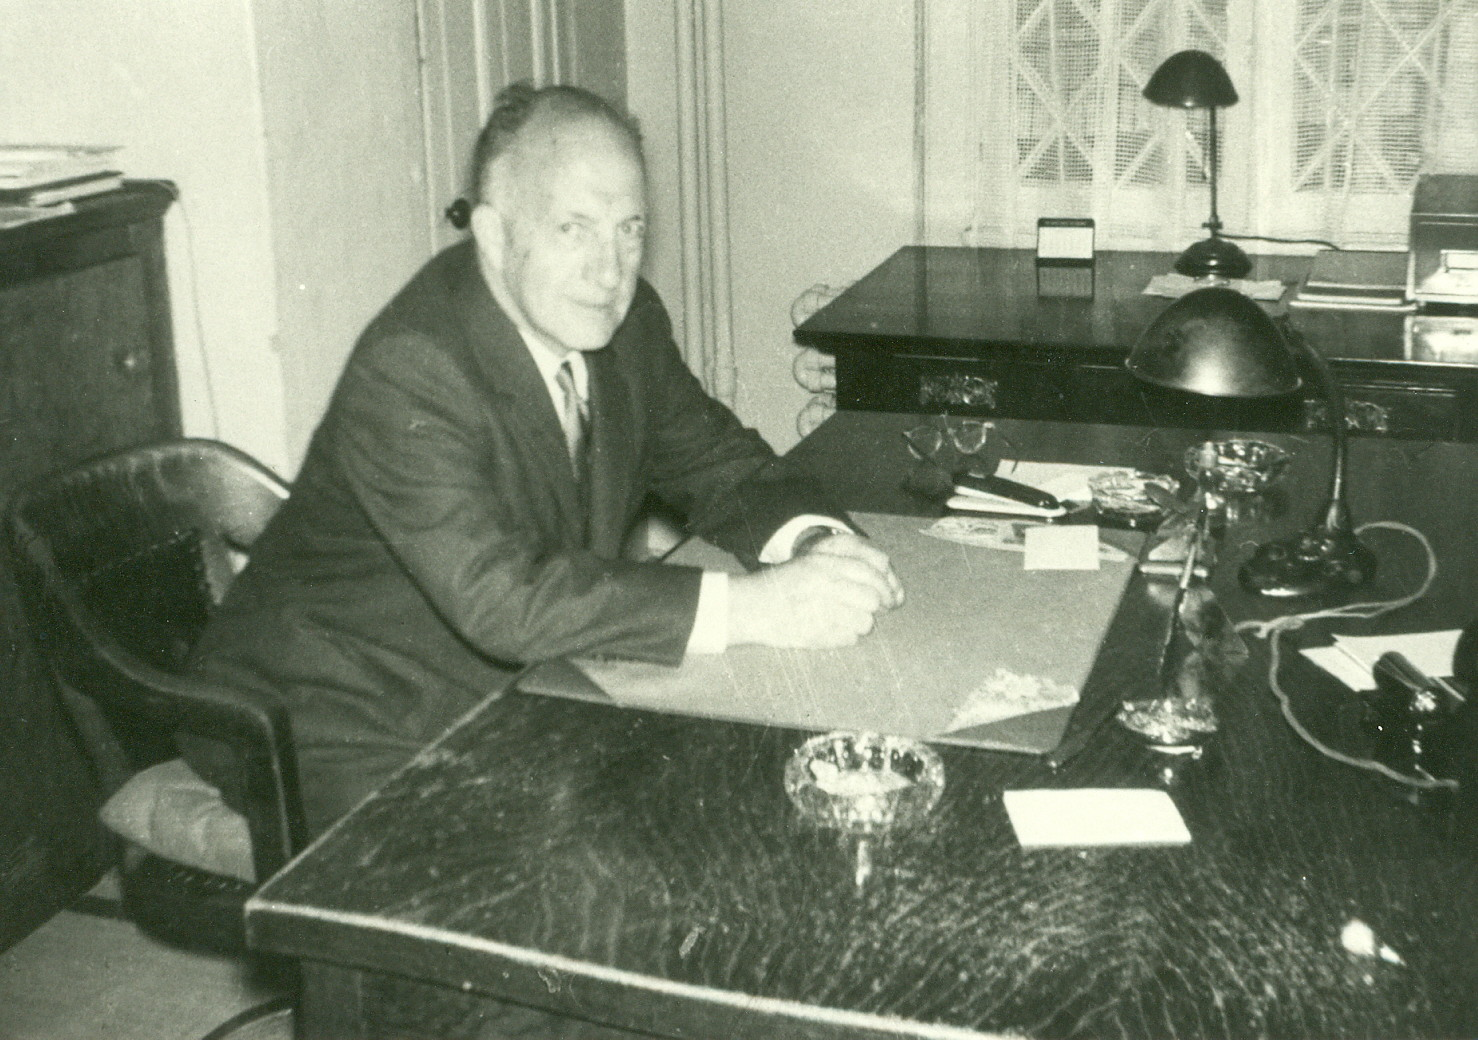 Green and white picture of an old man sitting at a large wooden desk.